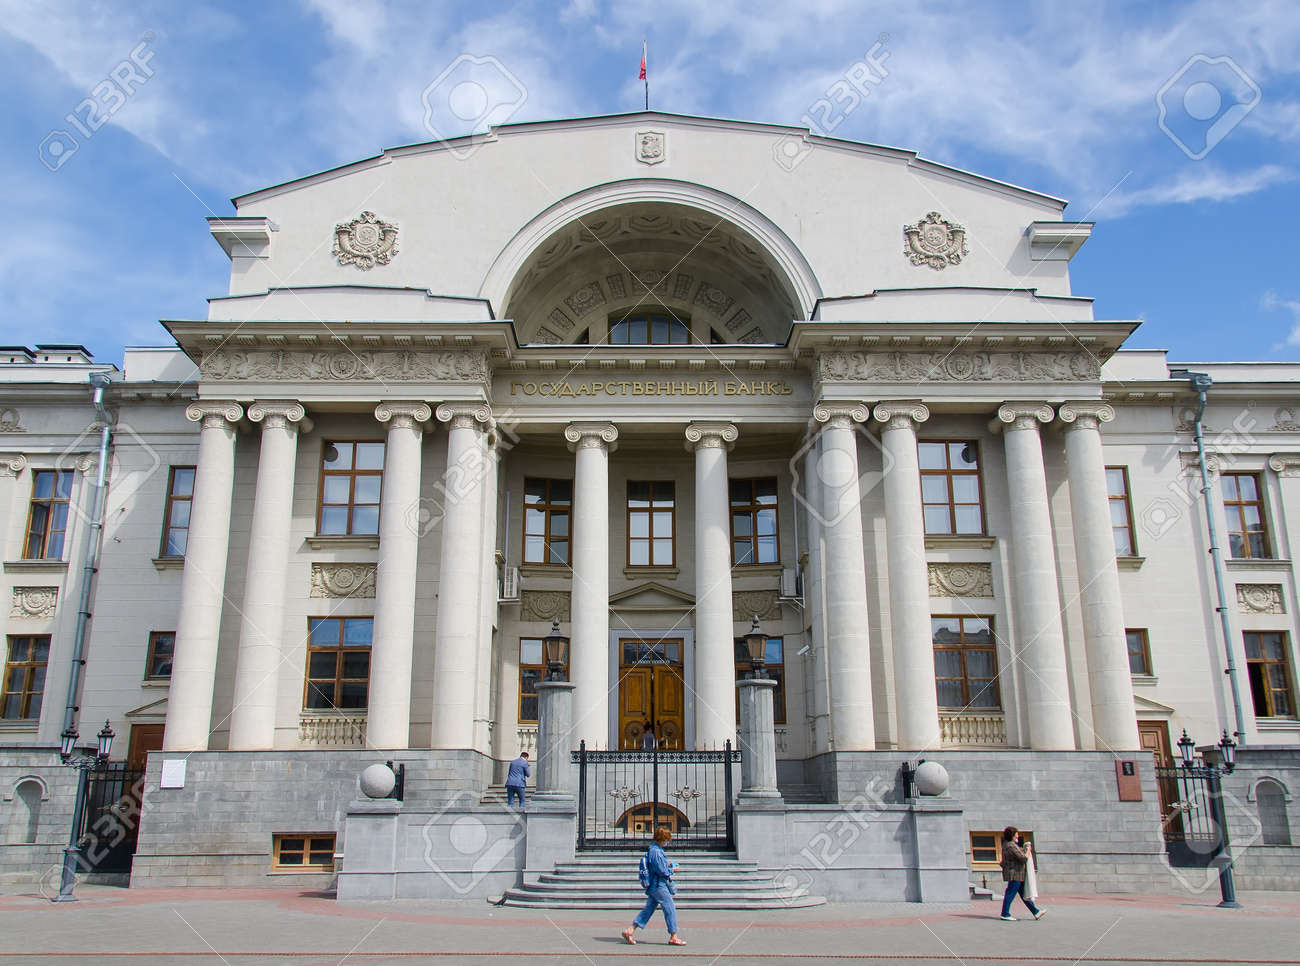 The building of the Central Bank of the Russian Federation in Kazan on Bauman Street - 165008537